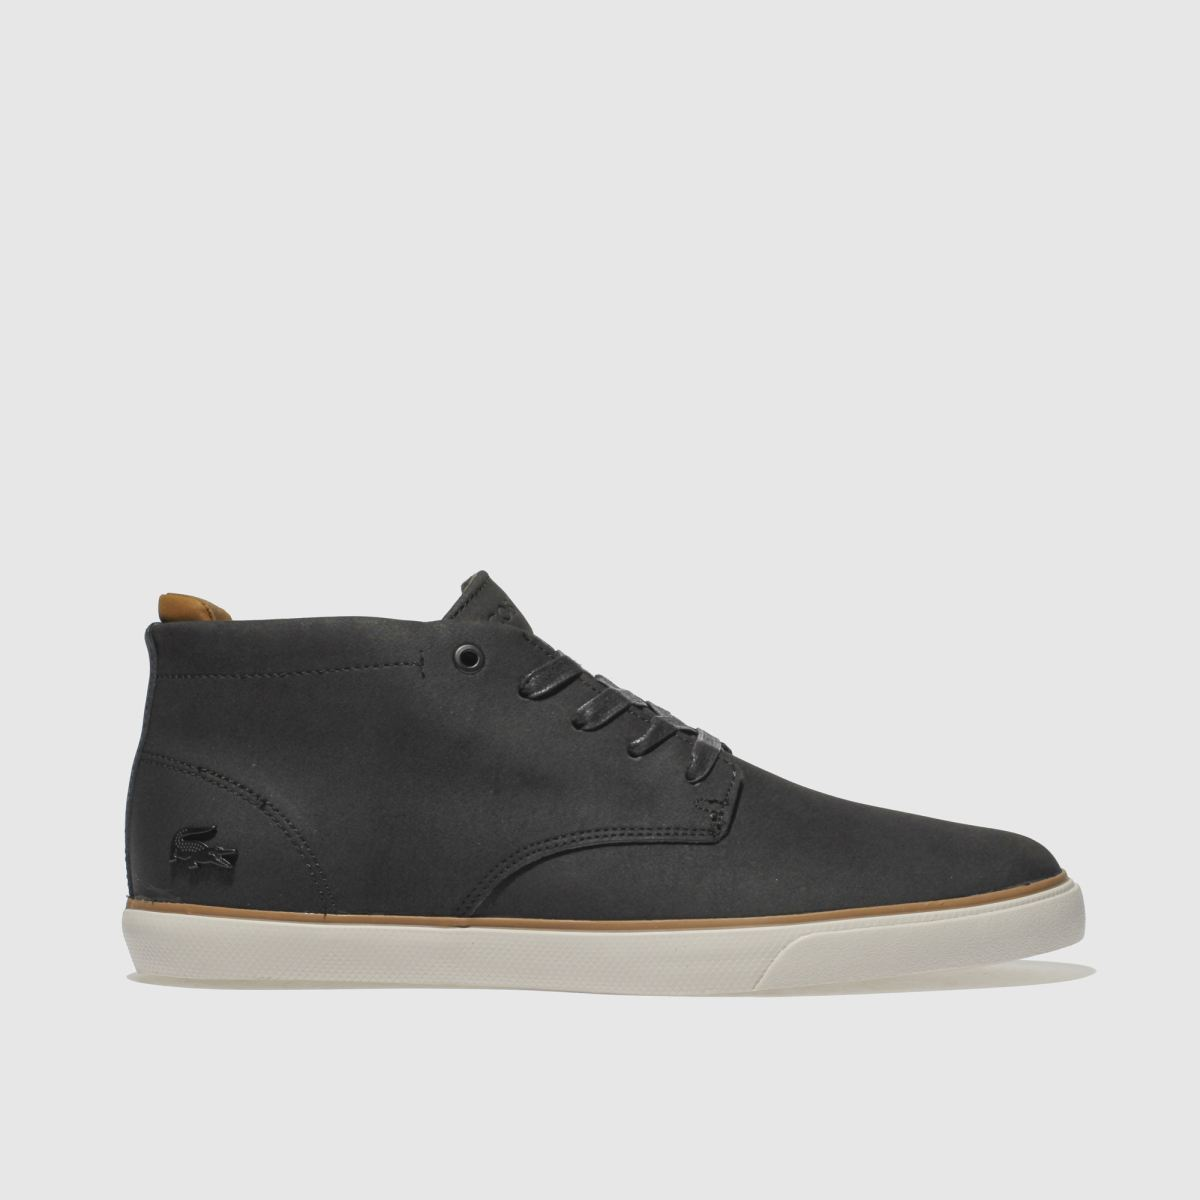 Lacoste Black & White Esparre Chukka Trainers